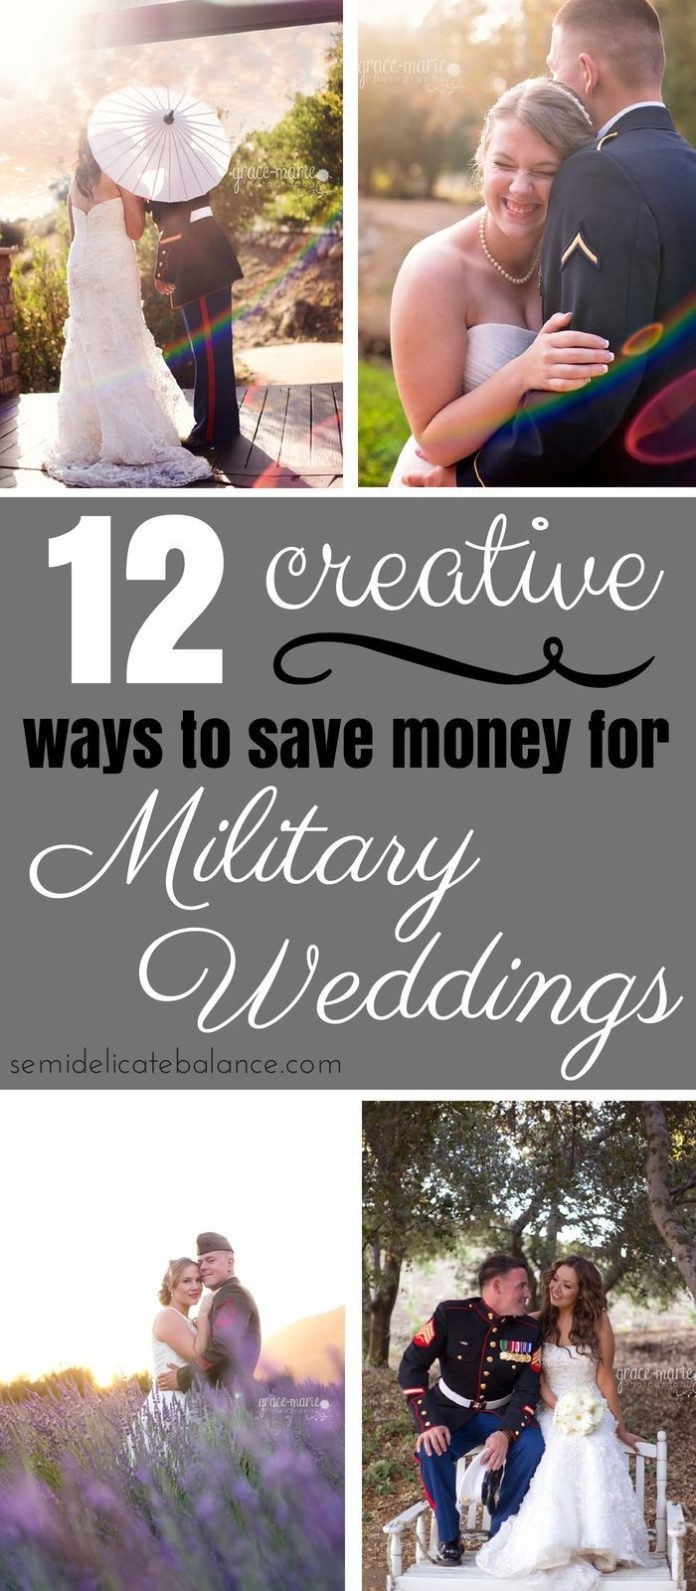 quotes about wedding 12 creative ways to save money on a military wedding quotes boxes you. Black Bedroom Furniture Sets. Home Design Ideas